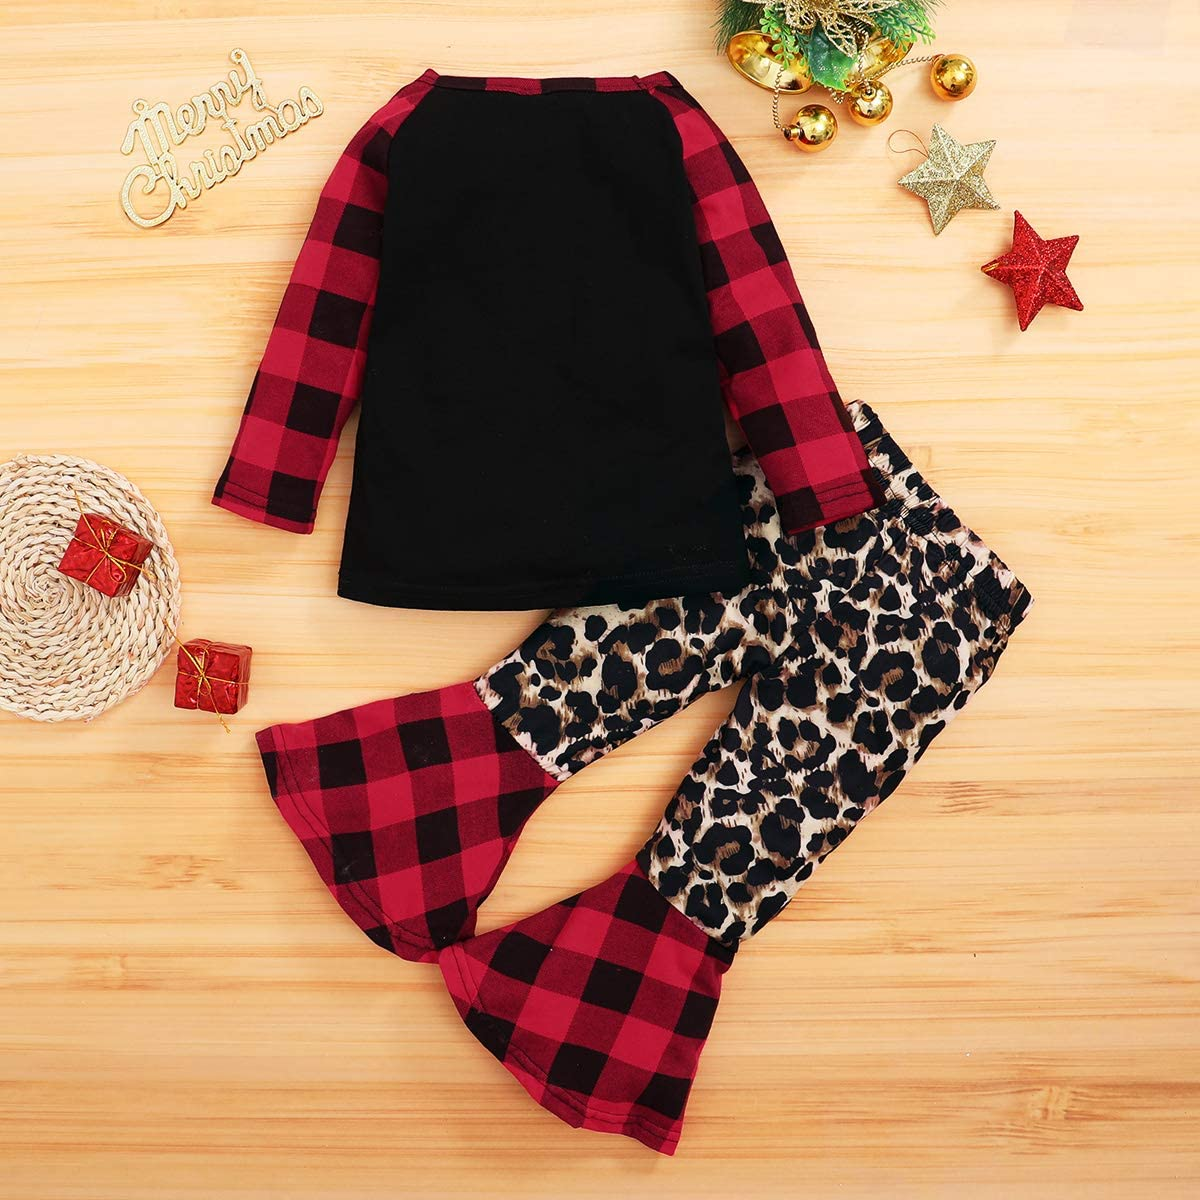 2Pcs Toddler Girl Halloween Christmas Outfits Baby Girl Clothes Long Sleeve Plaid Top Shirt Bell Bottom Jeans Pants Outfits